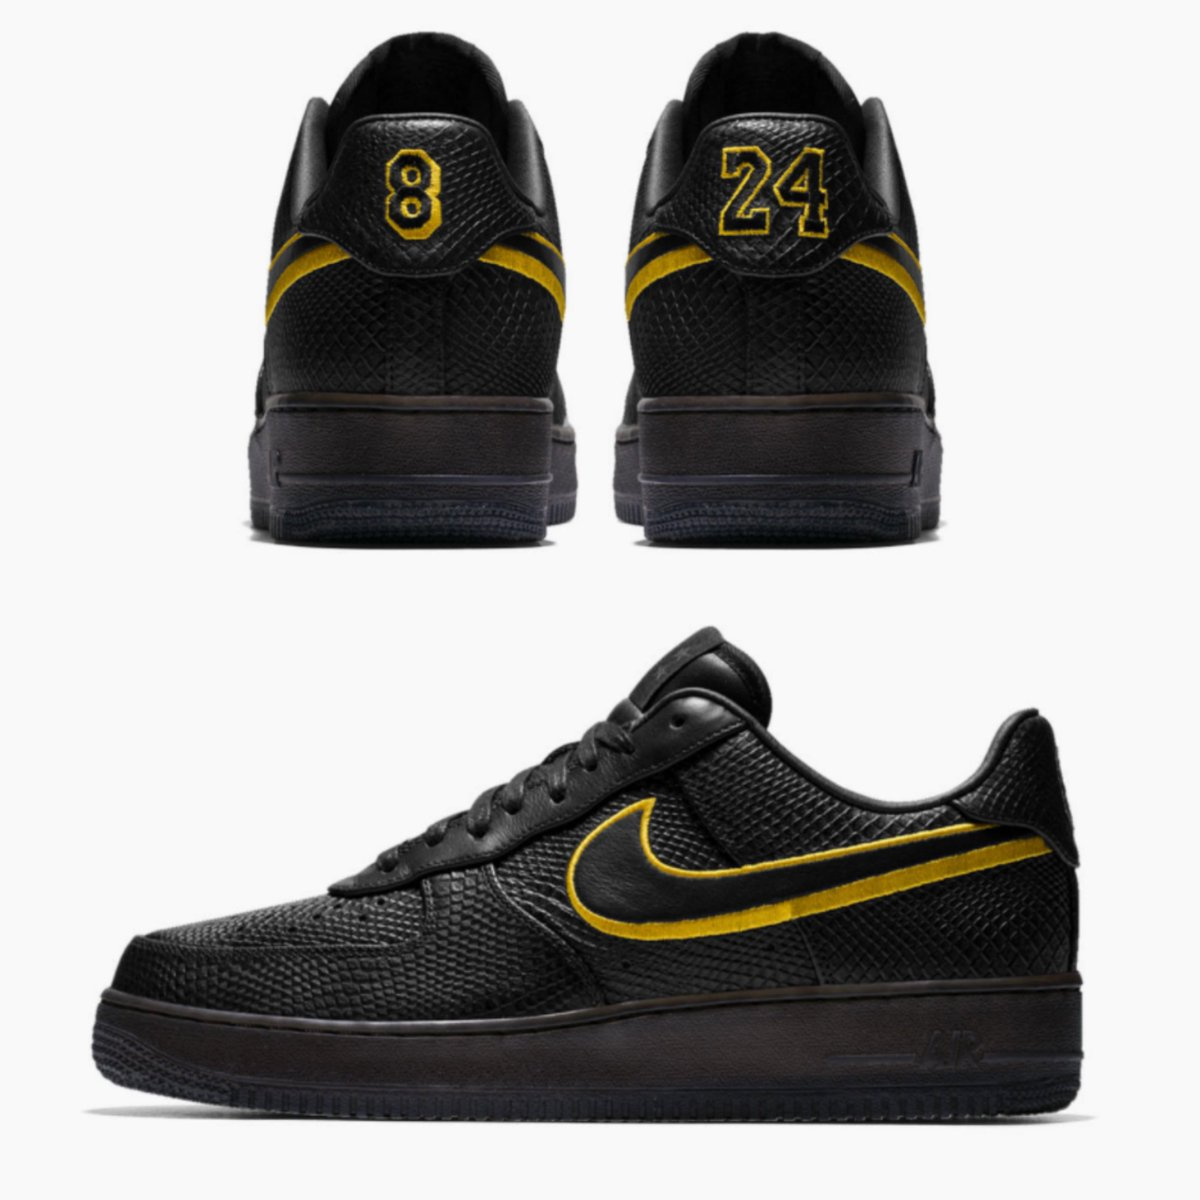 f8af62f3a6d ... promo code for sole links on twitter special edition nike air force 1  low prm black